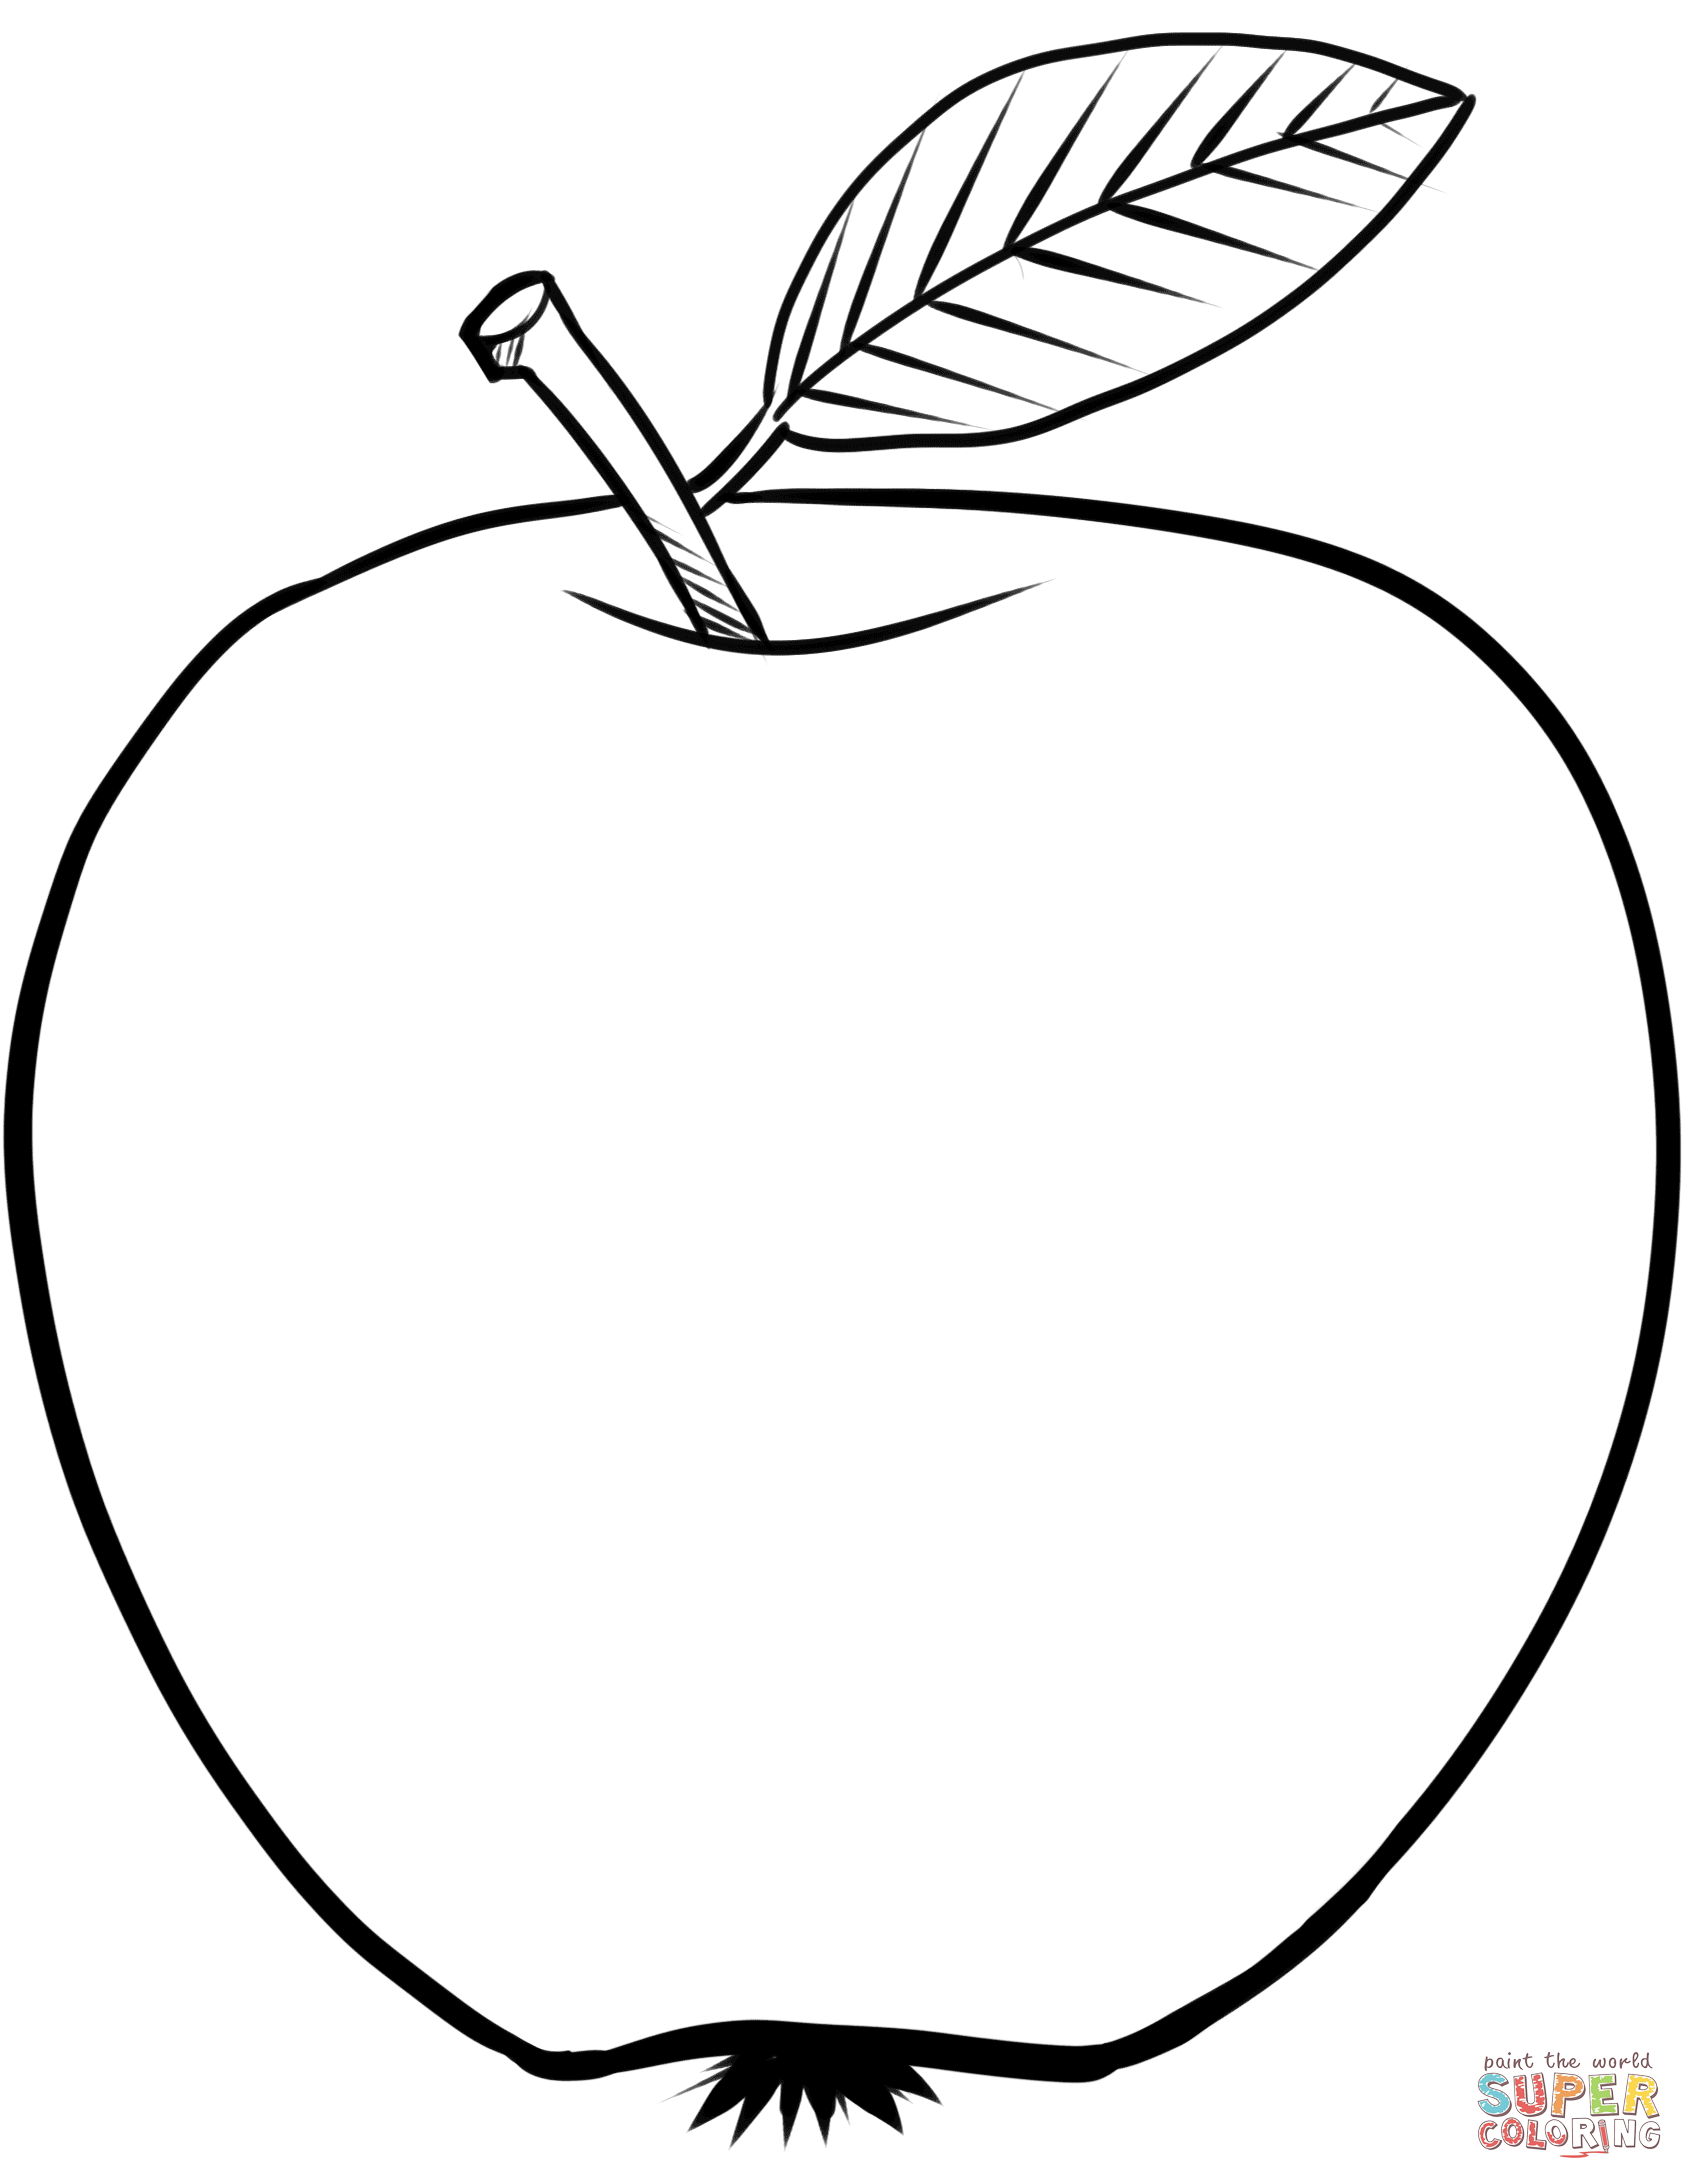 apple coloring pages kids - photo#23